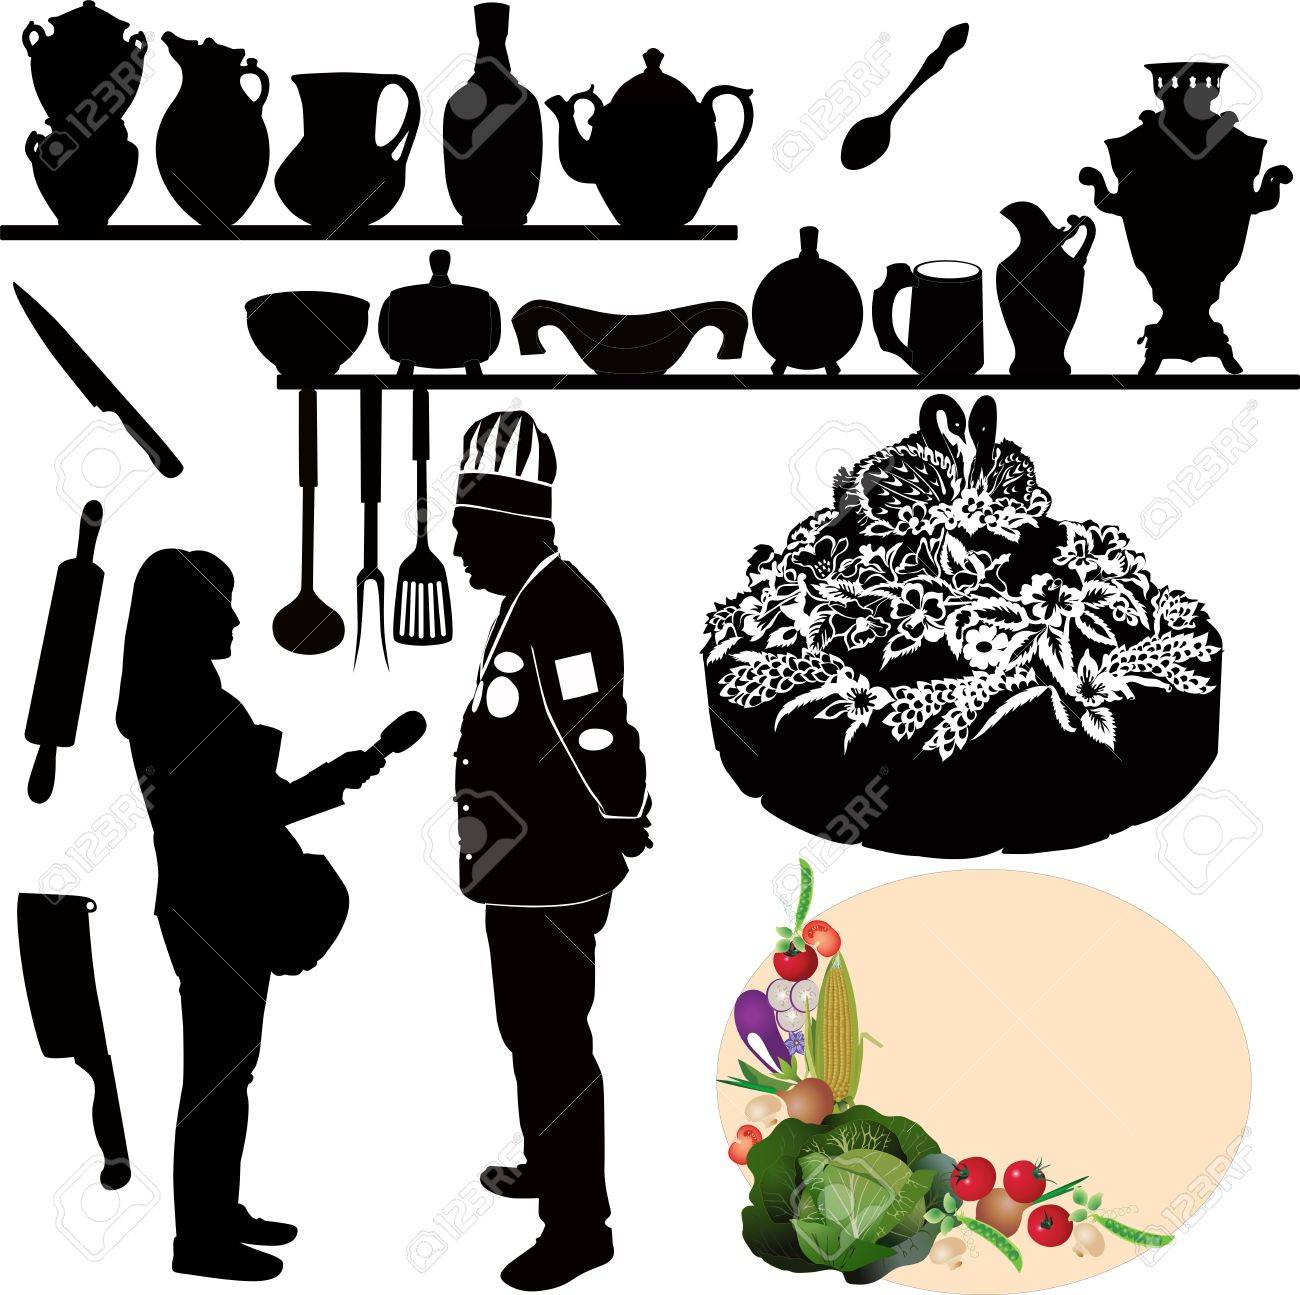 Kitchen Utensils Silhouette Vector Free chefs kitchen utensil cake royalty free cliparts, vectors, and